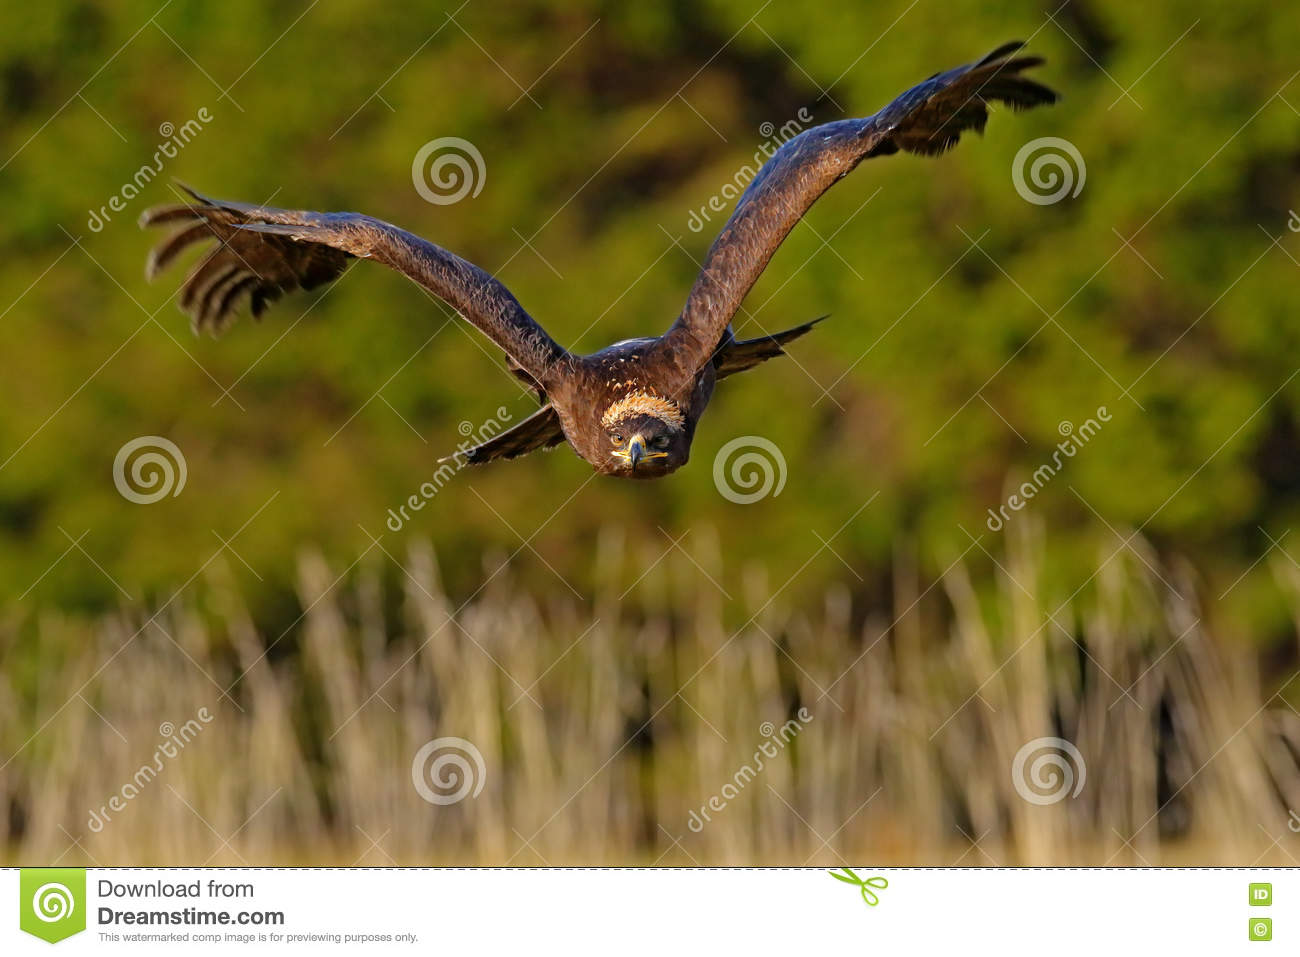 Steppe Eagle, Aquila nipalensis, bird moving action scene, flying dark brawn bird of prey with large wingspan, Sweden